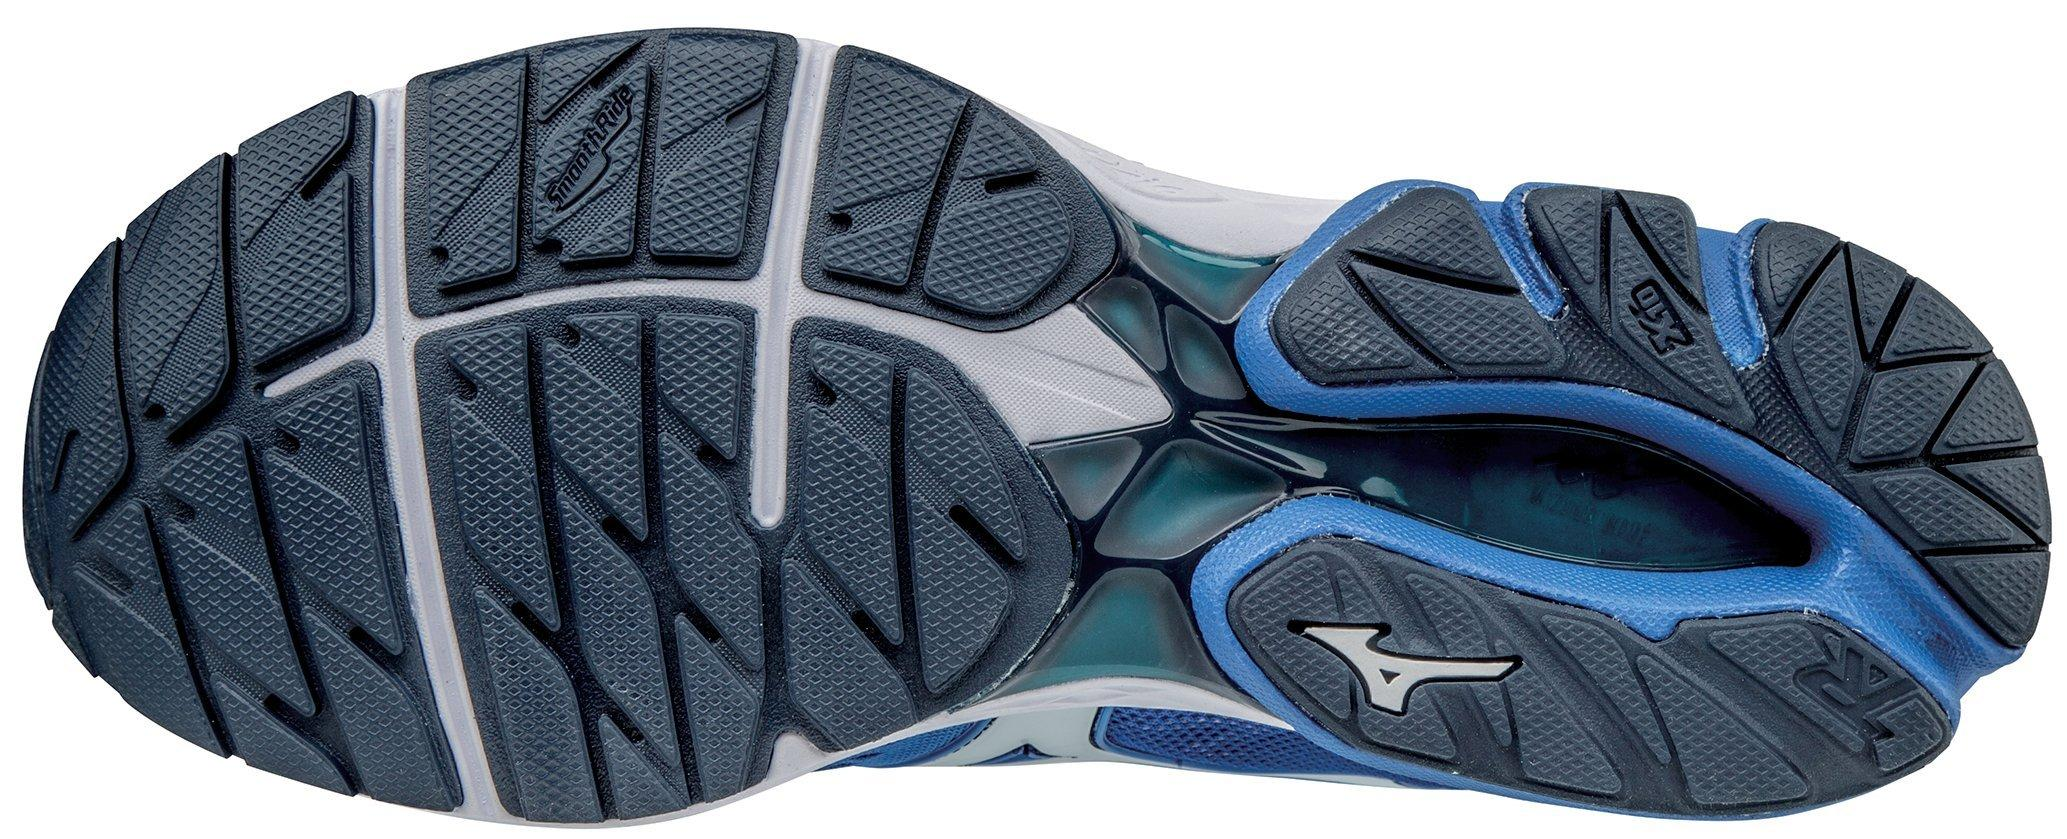 Wave Rider 20 Mens - Mizuno